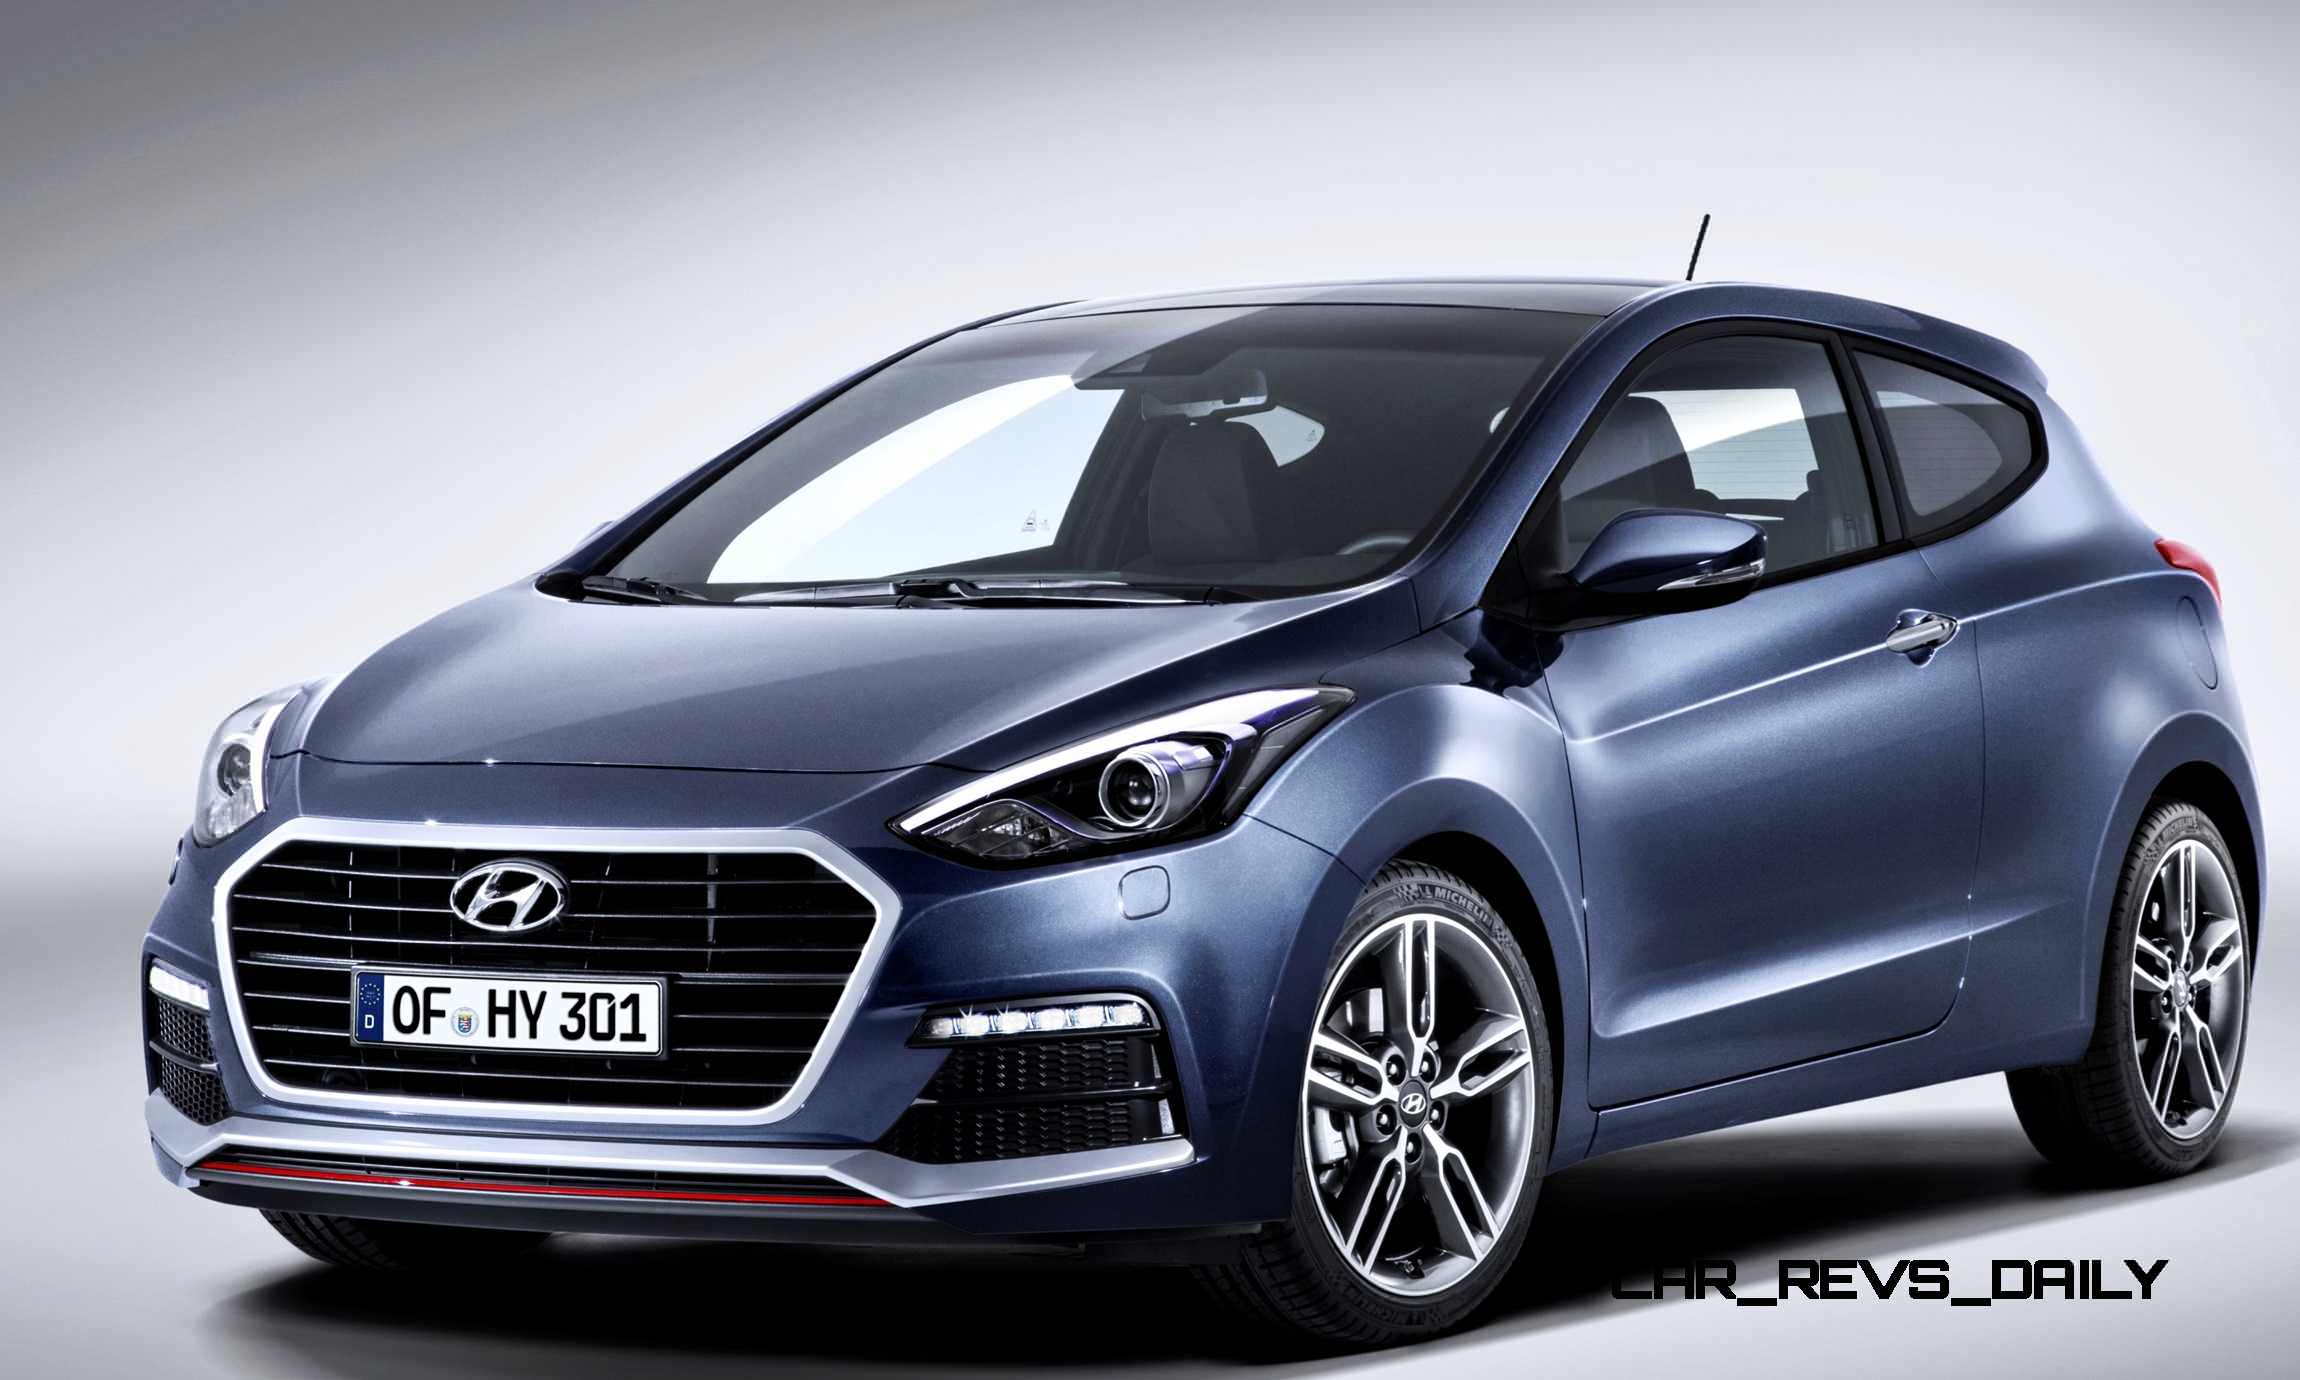 2015 hyundai i30 turbo. Black Bedroom Furniture Sets. Home Design Ideas